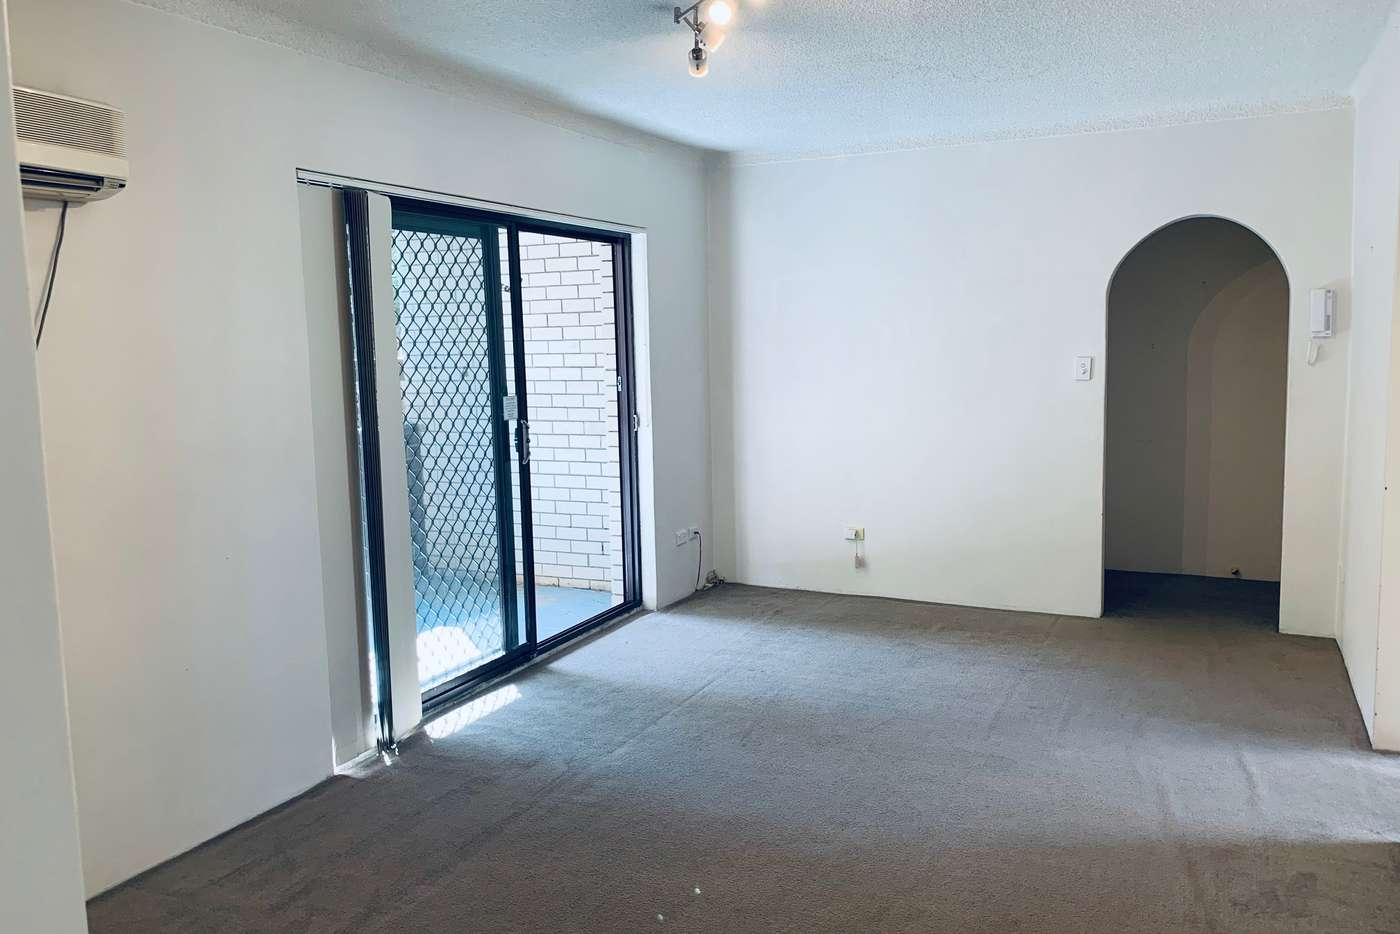 Sixth view of Homely apartment listing, 2/79 Anzac Avenue, West Ryde NSW 2114